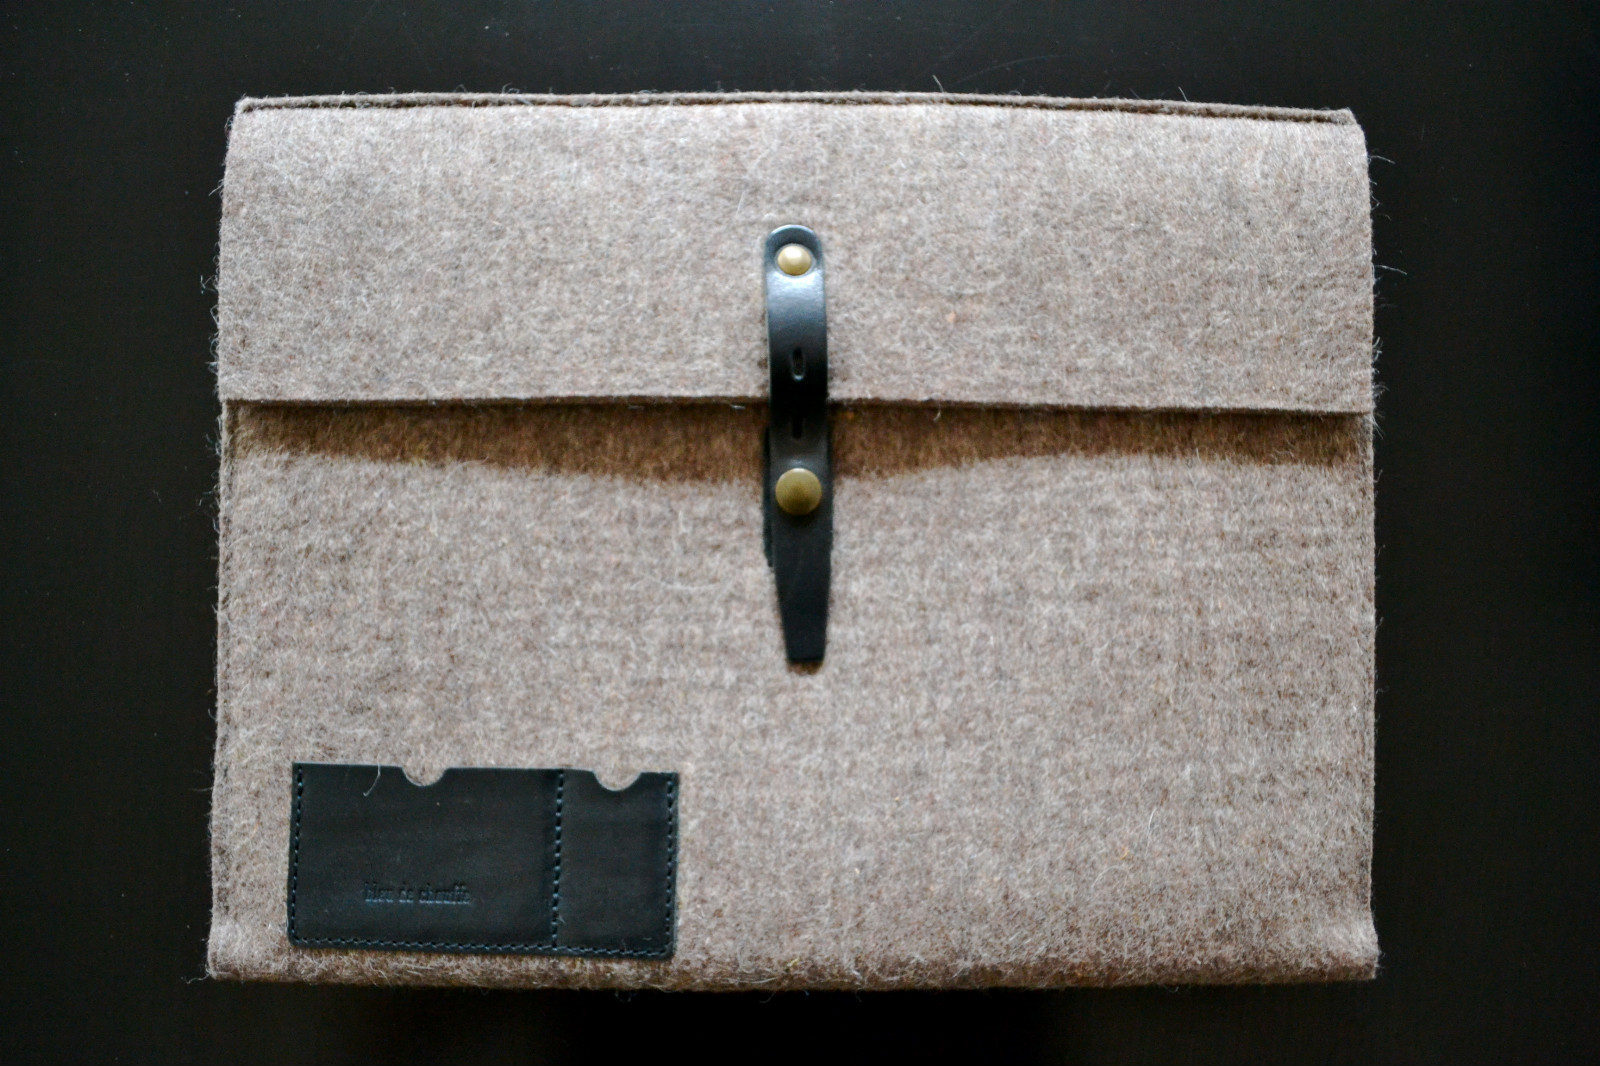 Bleu de Chauffe Laptop Case on Droleries & Curiosities